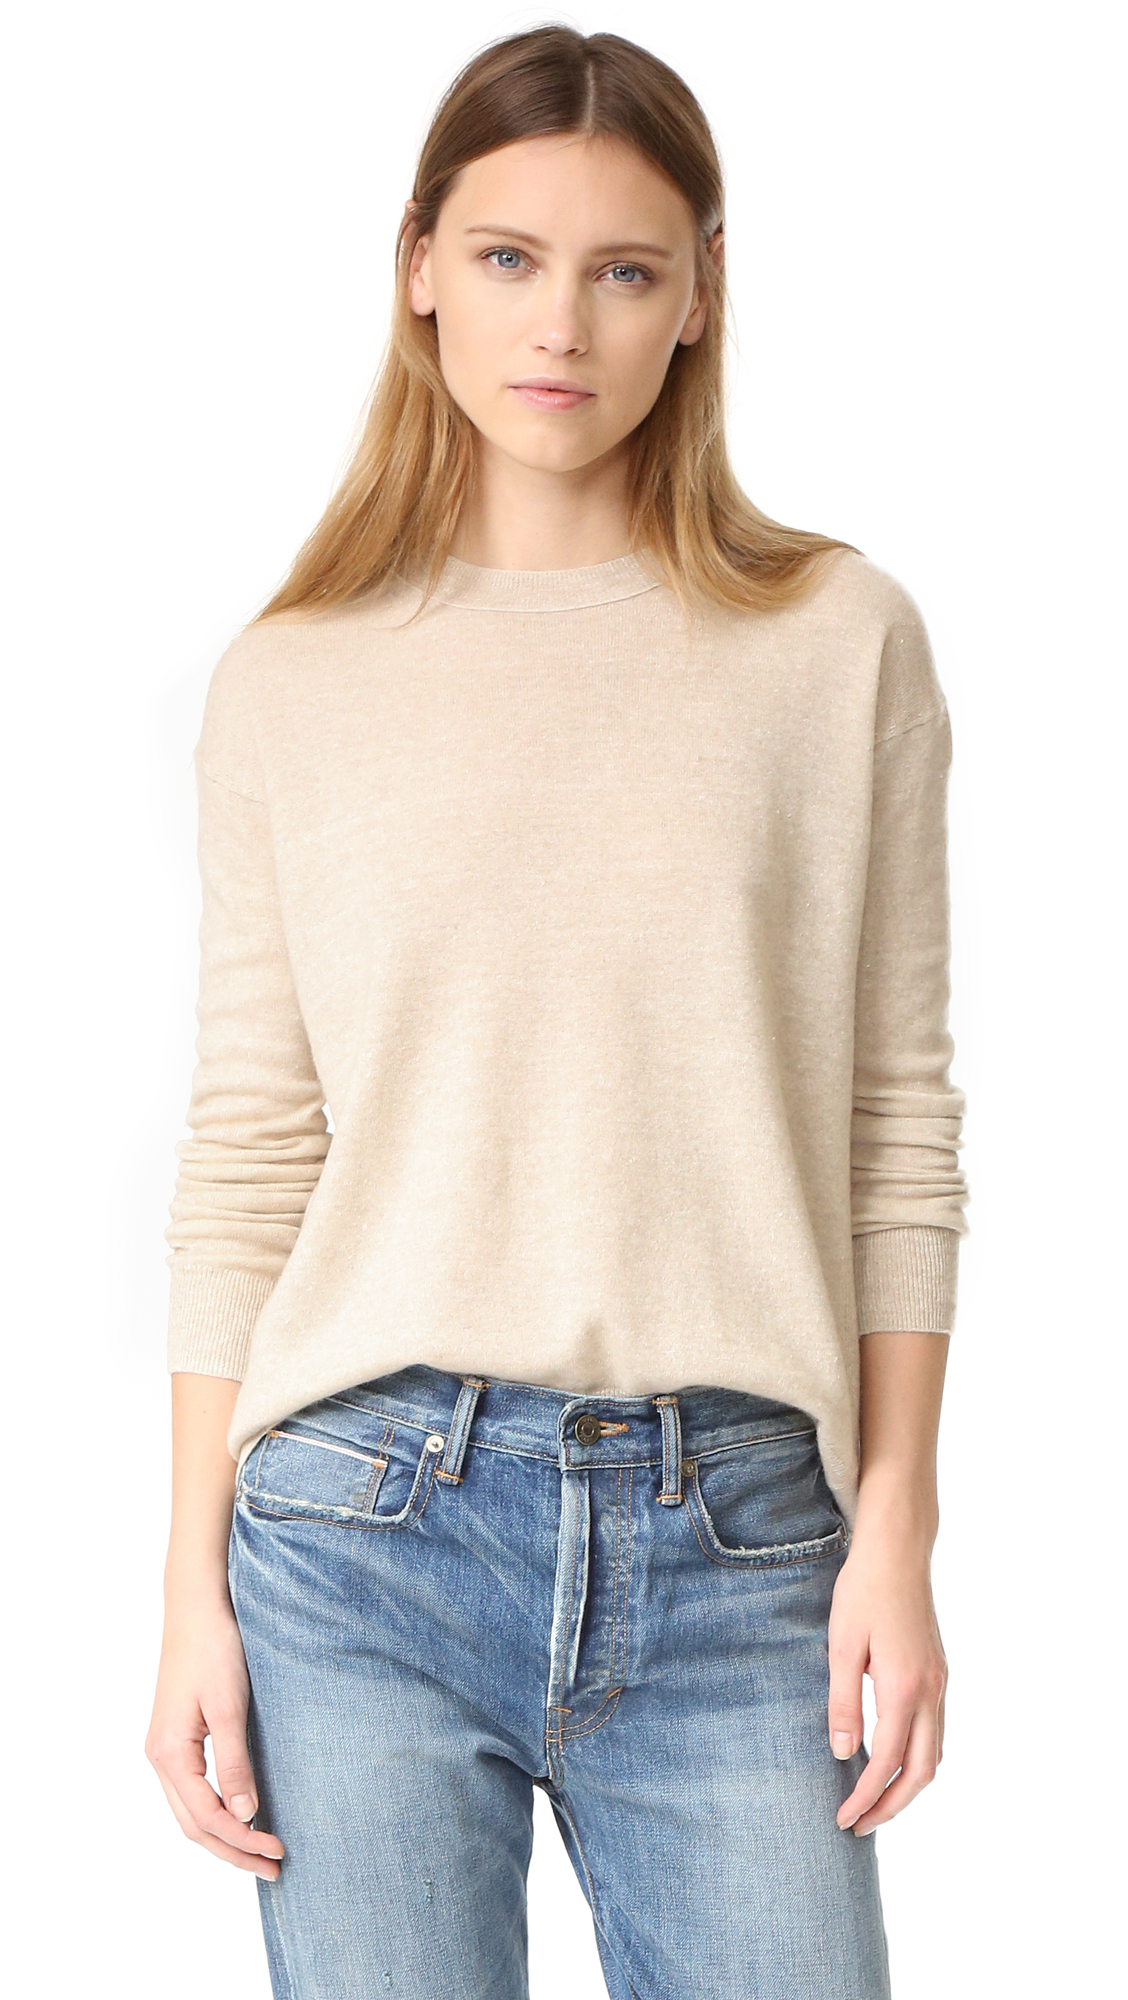 Vince Boxy Sweater - H. Tan at Shopbop